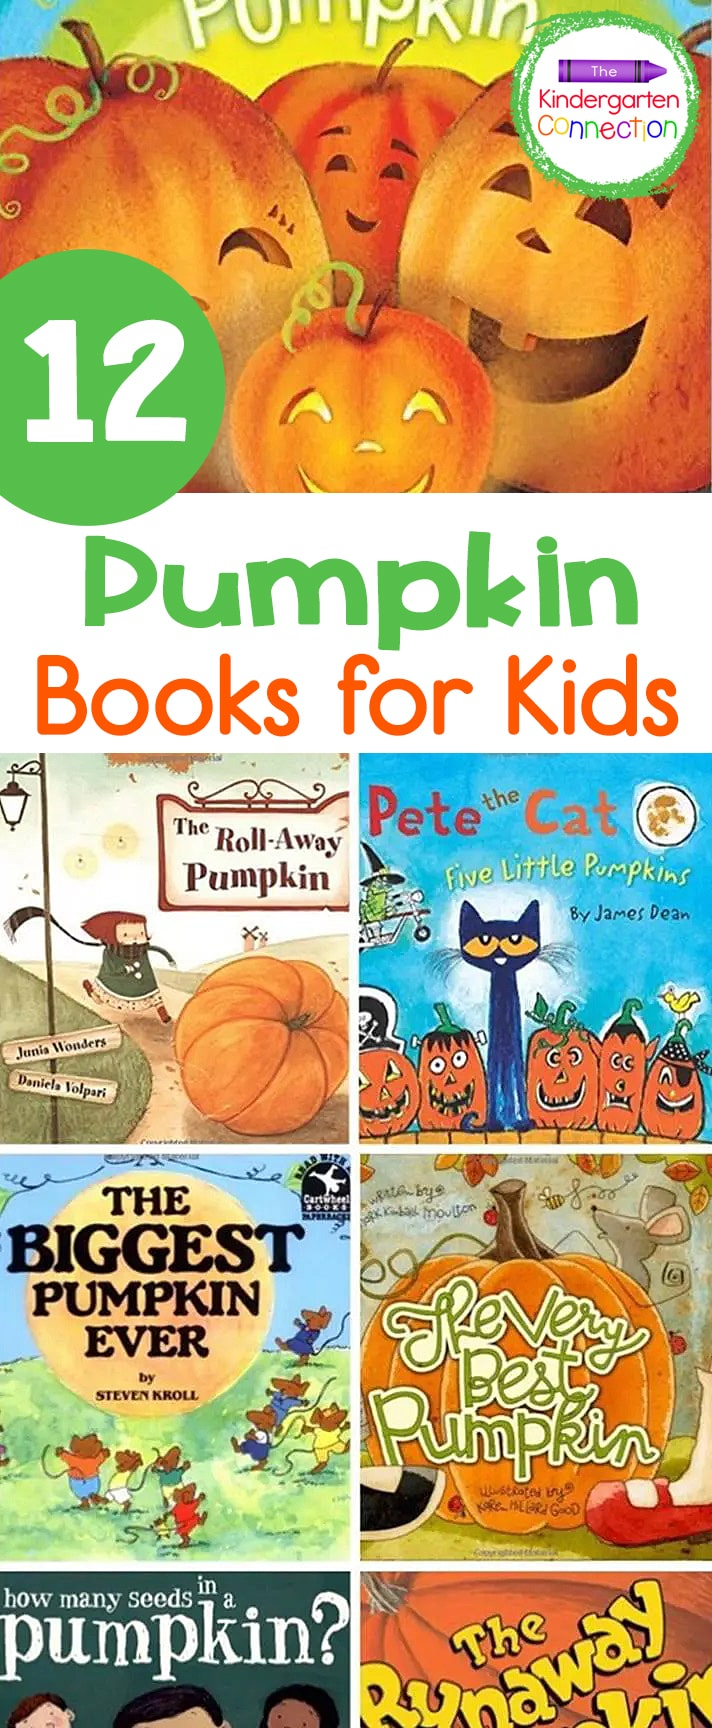 Get ready for fall and pumpkin themed fun with these 12 awesome pumpkin books for kids! Your kids are sure to love them!